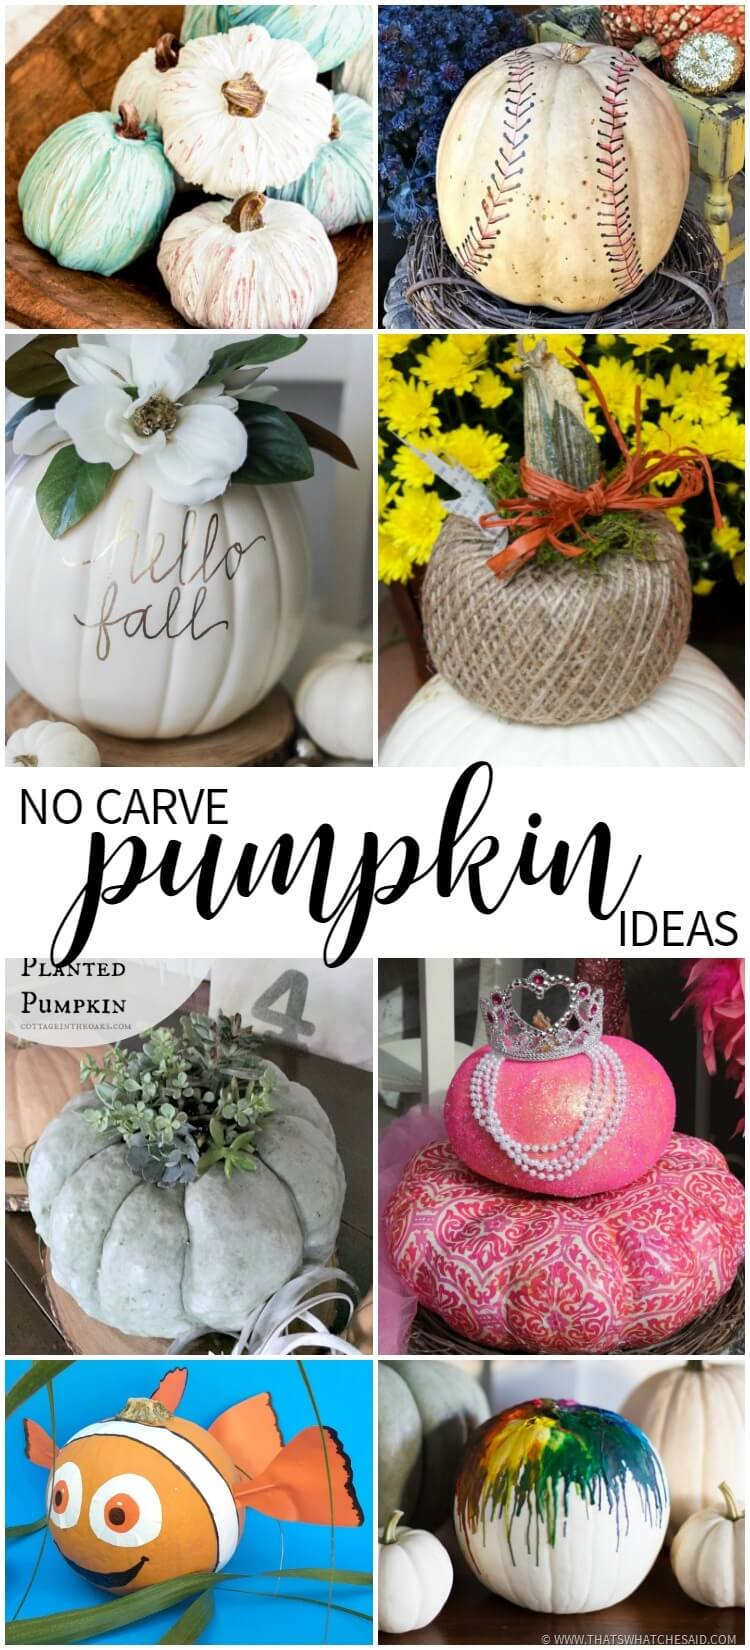 No Carve Pumpkin Ideas at Monday Funday Link Party